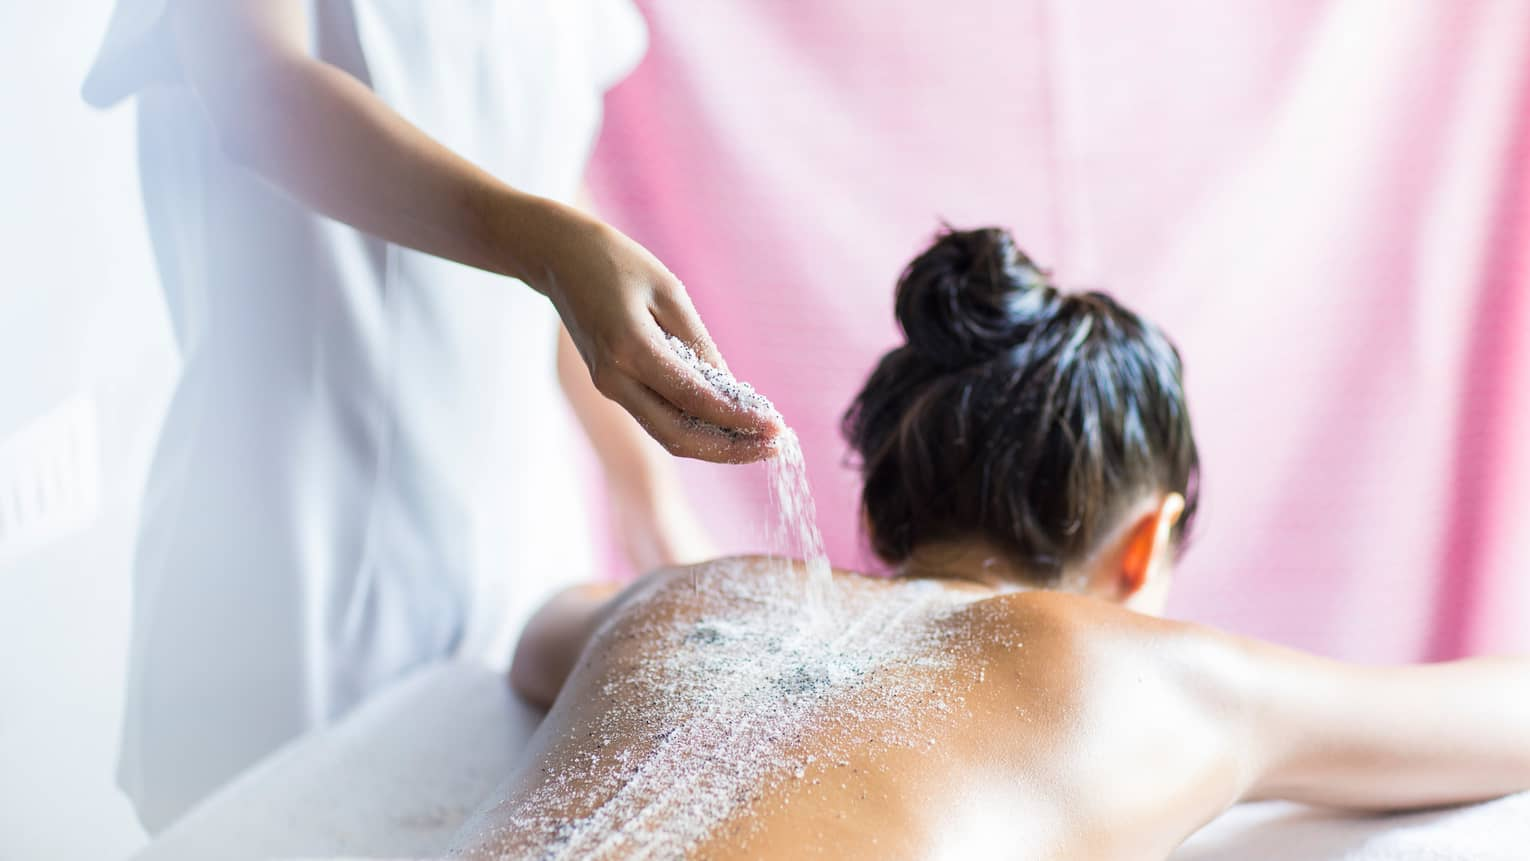 Spa staff pours salts, sand over woman's bare back as she lies on treatment room table